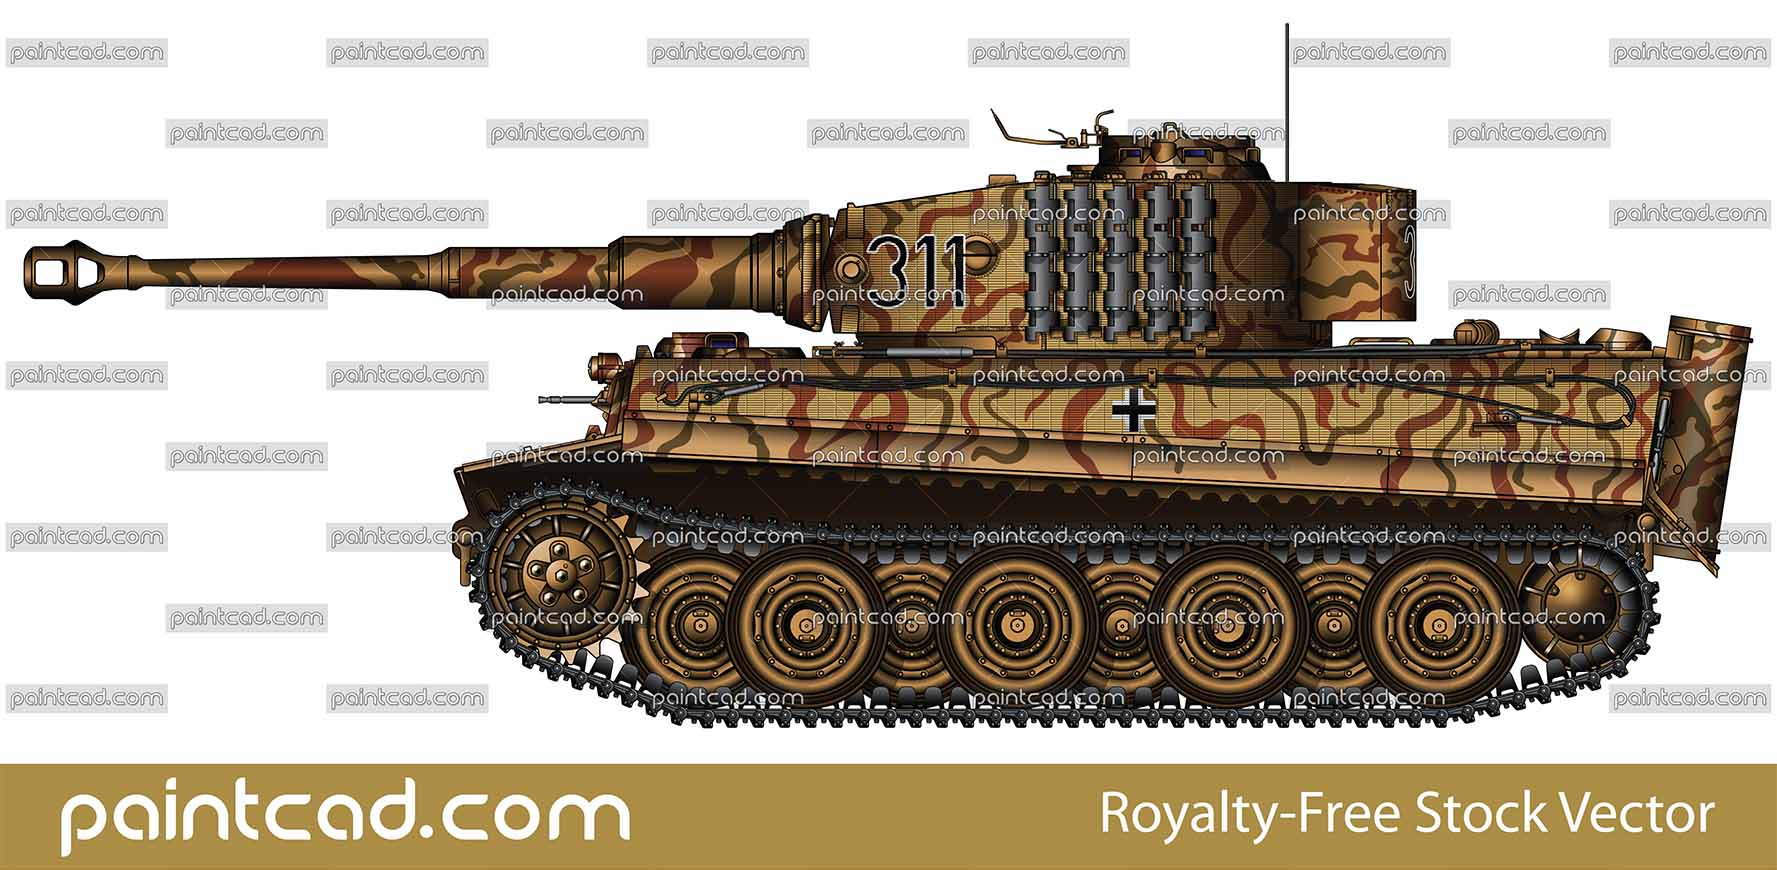 German heavy tank Panzer VI Tiger I Ausf E from World War II - vector illustration